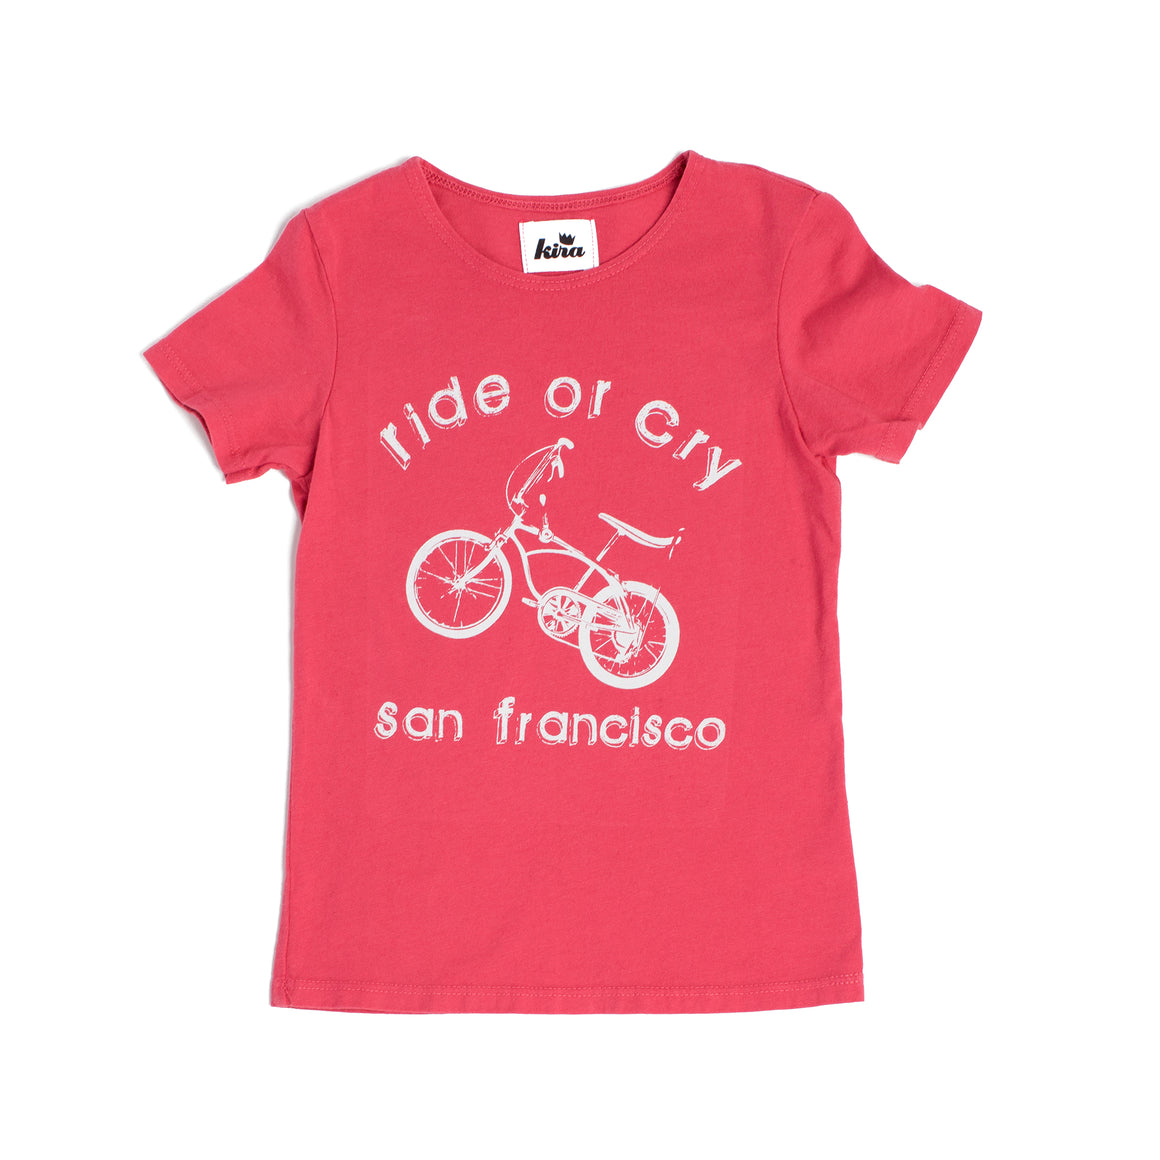 Ride or Cry SF T-shirt, Cherry Red